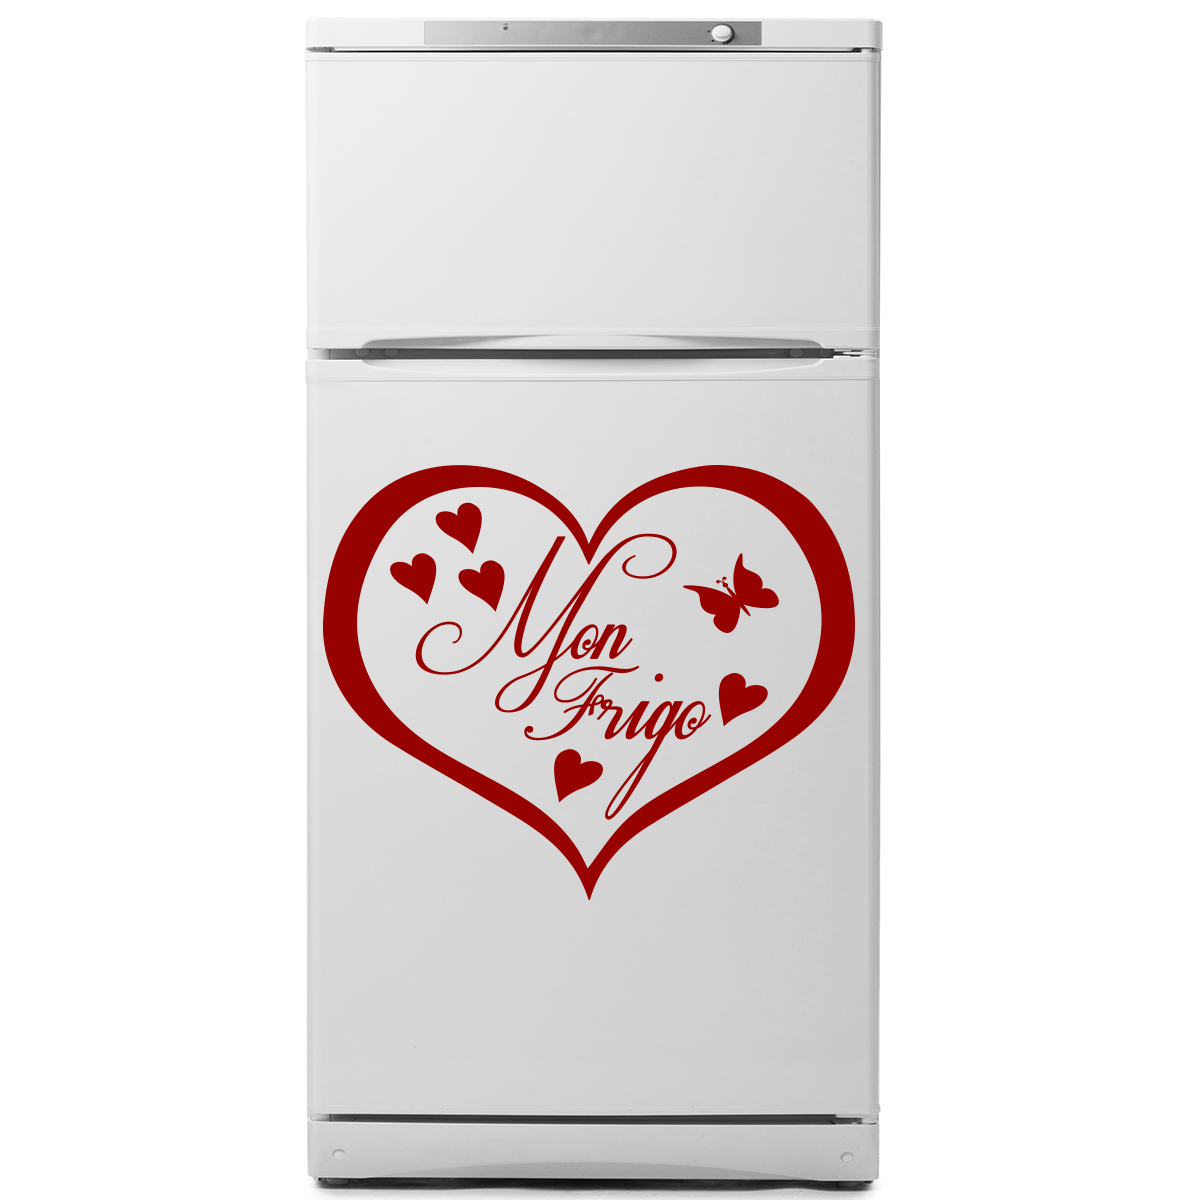 sticker frigo mon frigo coeur stickers citations ambiance sticker. Black Bedroom Furniture Sets. Home Design Ideas